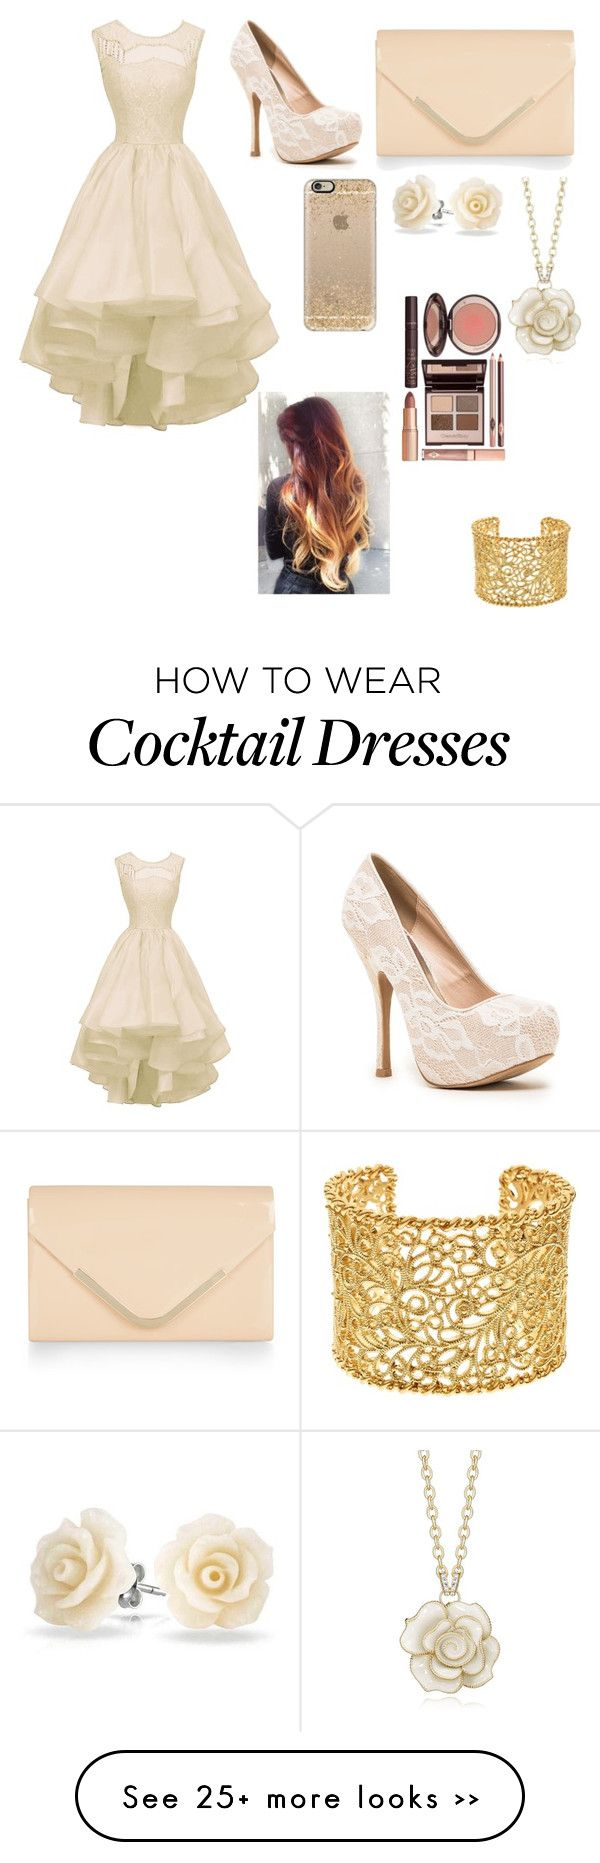 """""""Untitled #157"""" by ravinz on Polyvore featuring Qupid, Brooks Brothers, Accessorize, Bling Jewelry, Casetify and Charlotte Tilbury"""